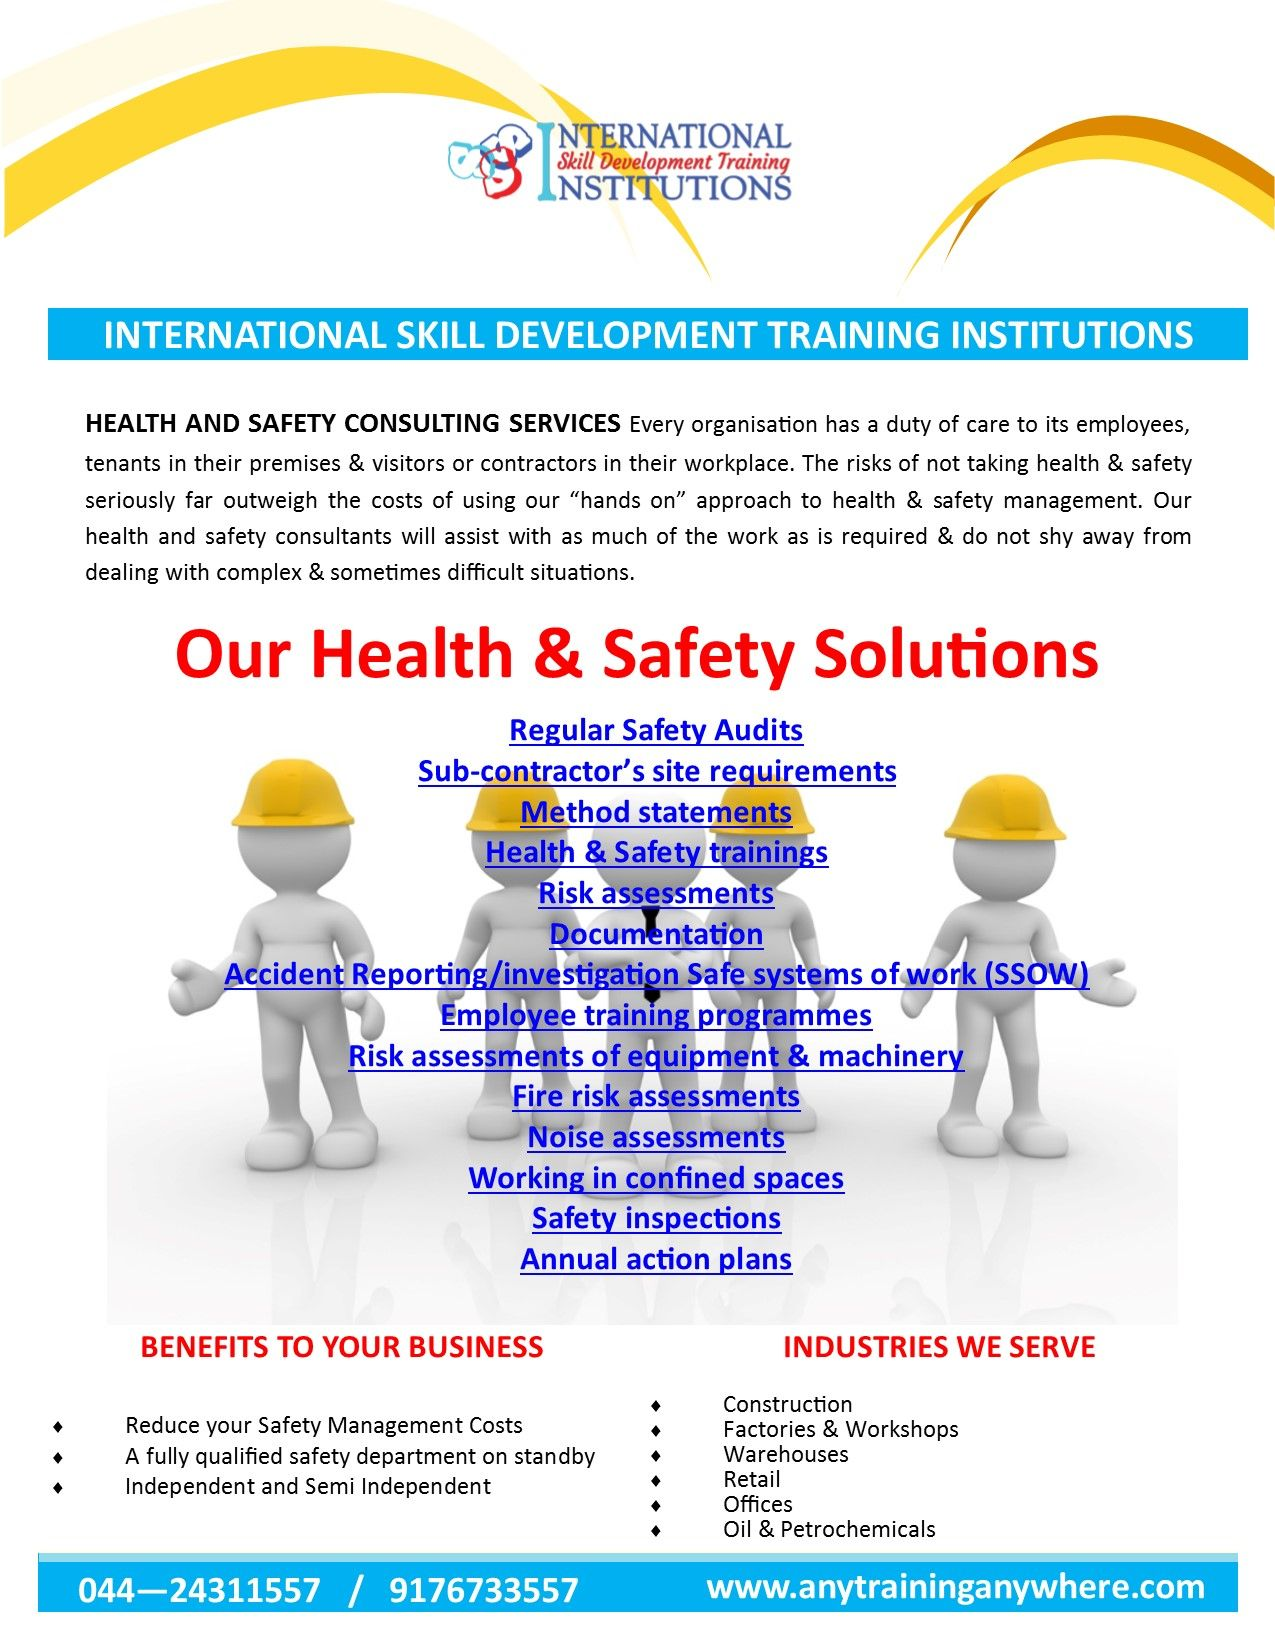 Pin on Corporate Safety Training, NEBOSH,IOSH,OSHA,NFPA,IIRSM